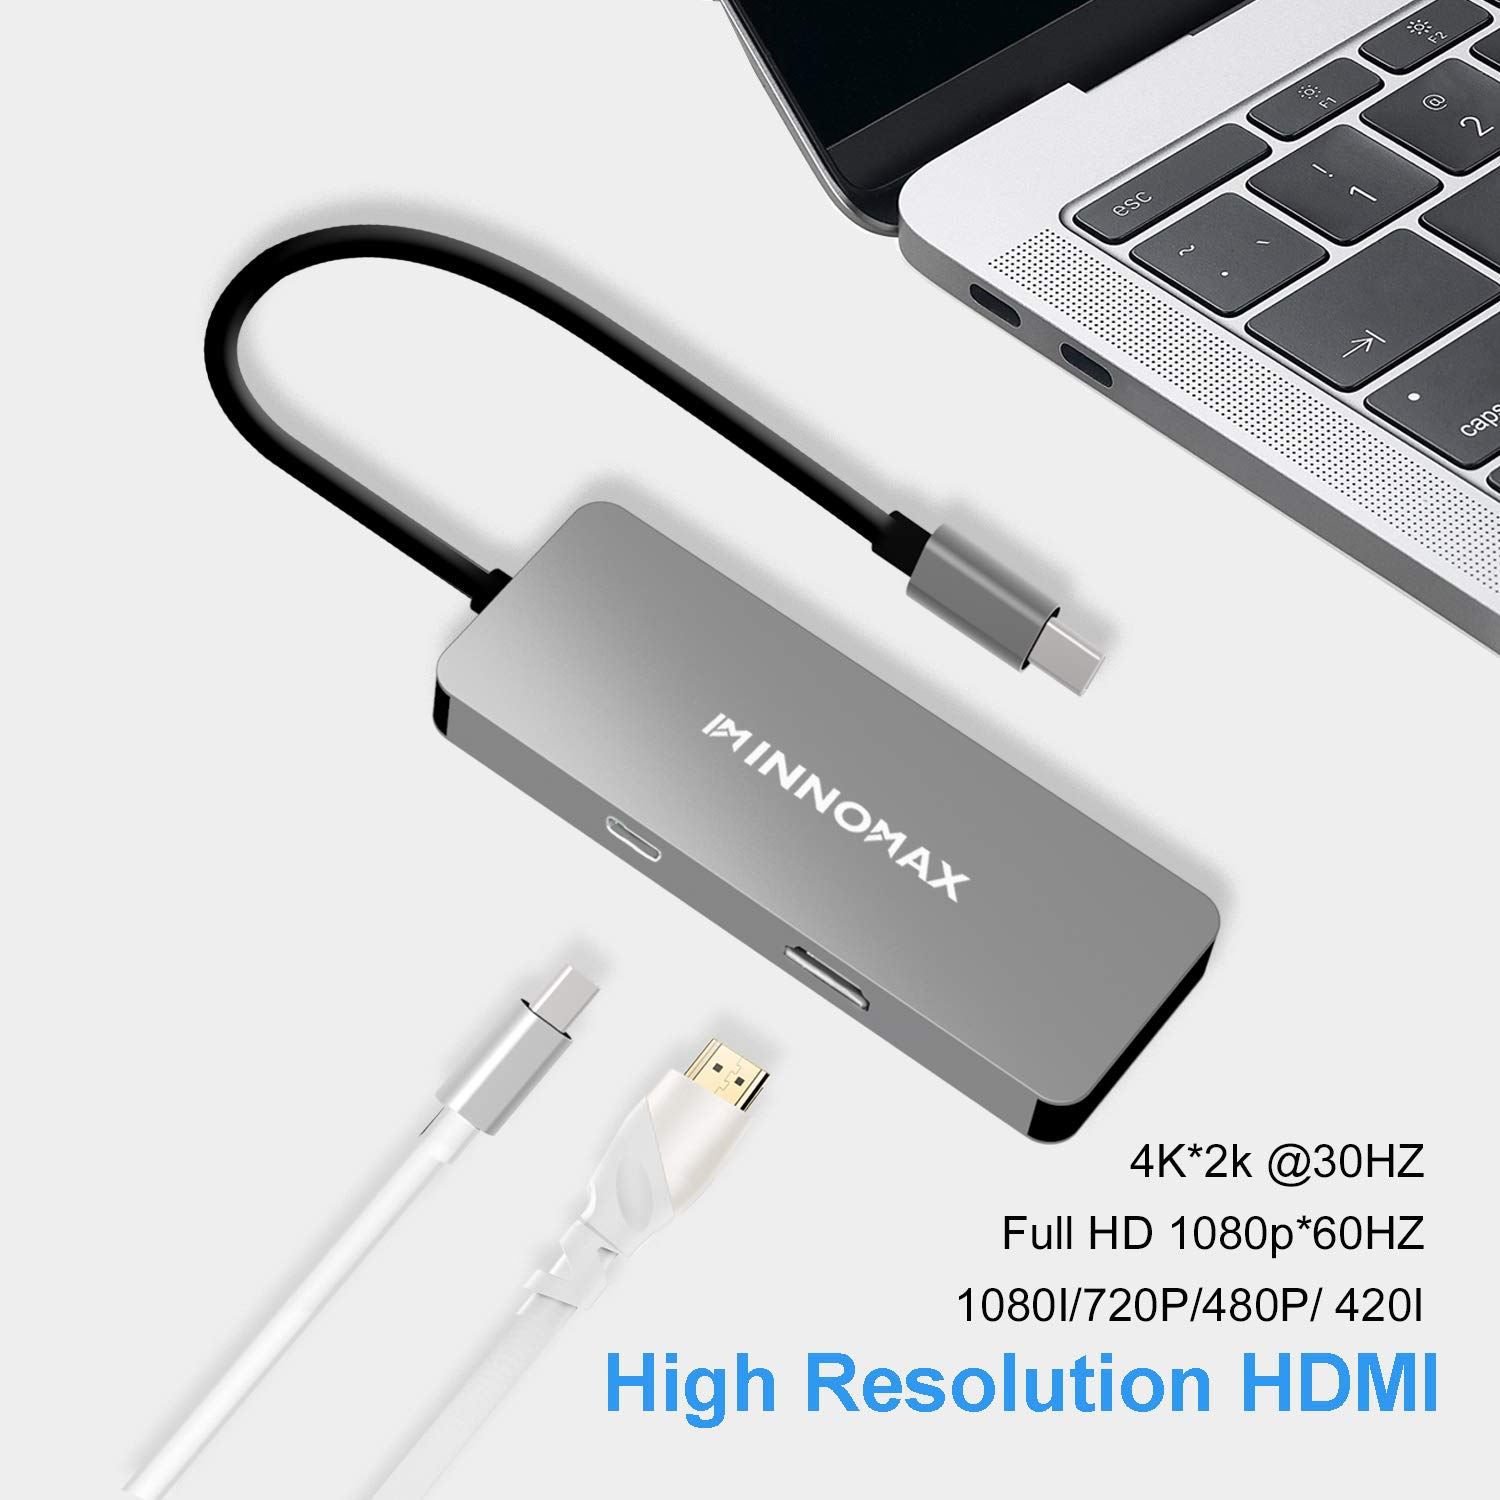 INNOMAX 7-N-1 USB Type-C to HDMI Adapter Hub with Power Delivery, SD Card Reader, 3 USB Ports for New MacBook Pro, Windows Powered Type C PC and Phones Like HW Mate 10 Pro,Samsung S8 etc-Gray by INNOMAX (Image #3)